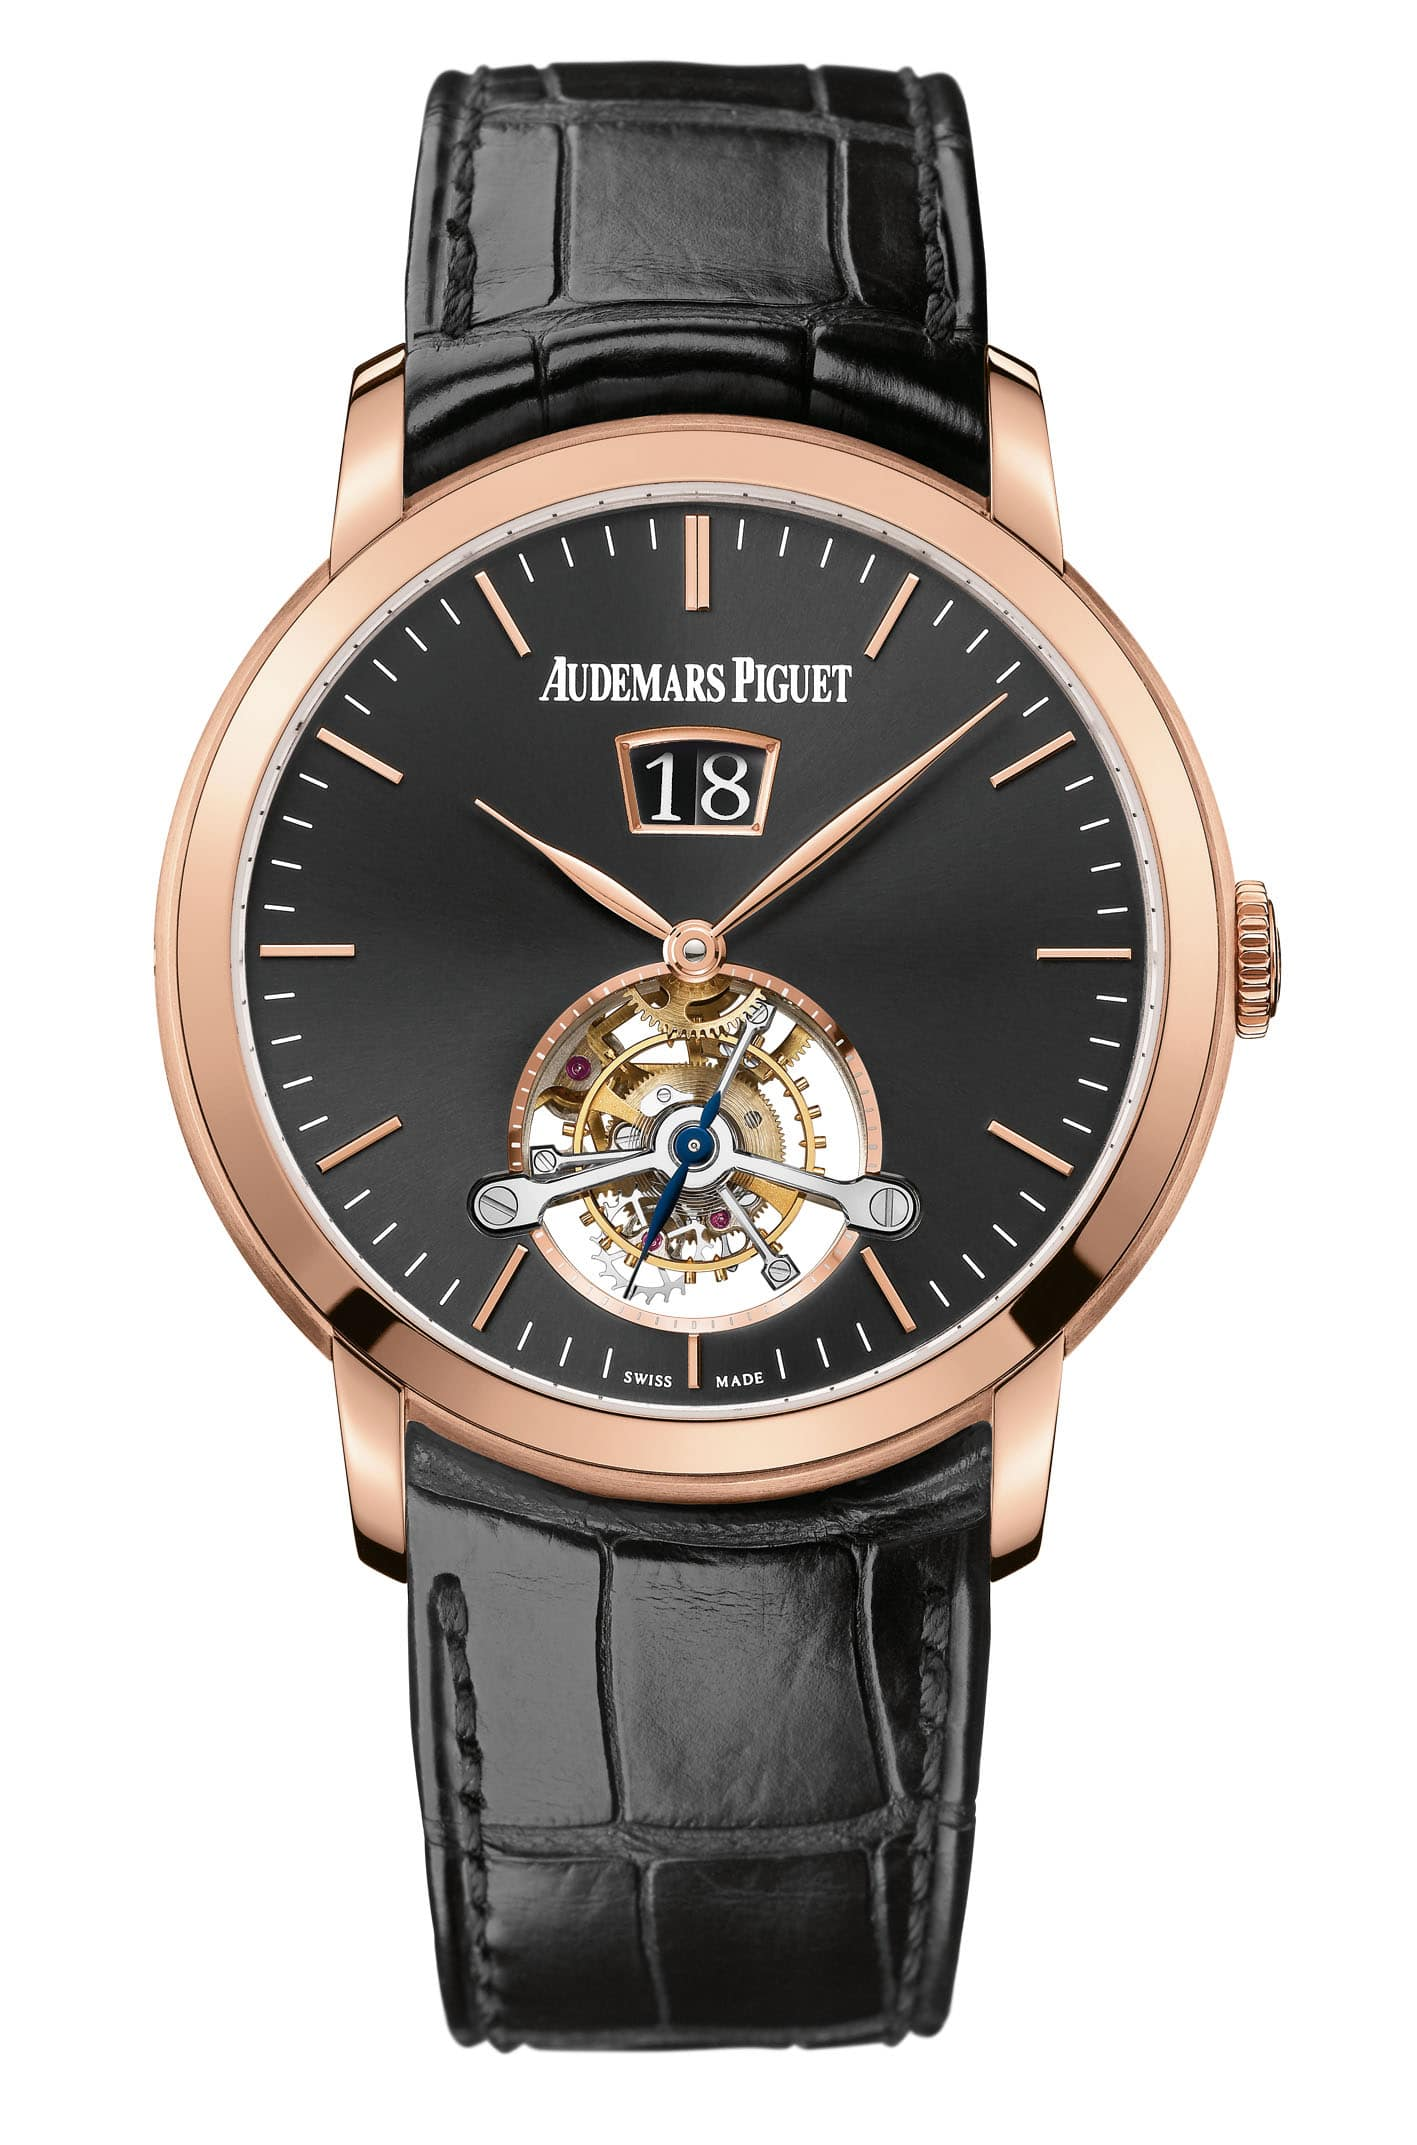 Audemars Piguet: Jules Audemars Tourbillon Large Date